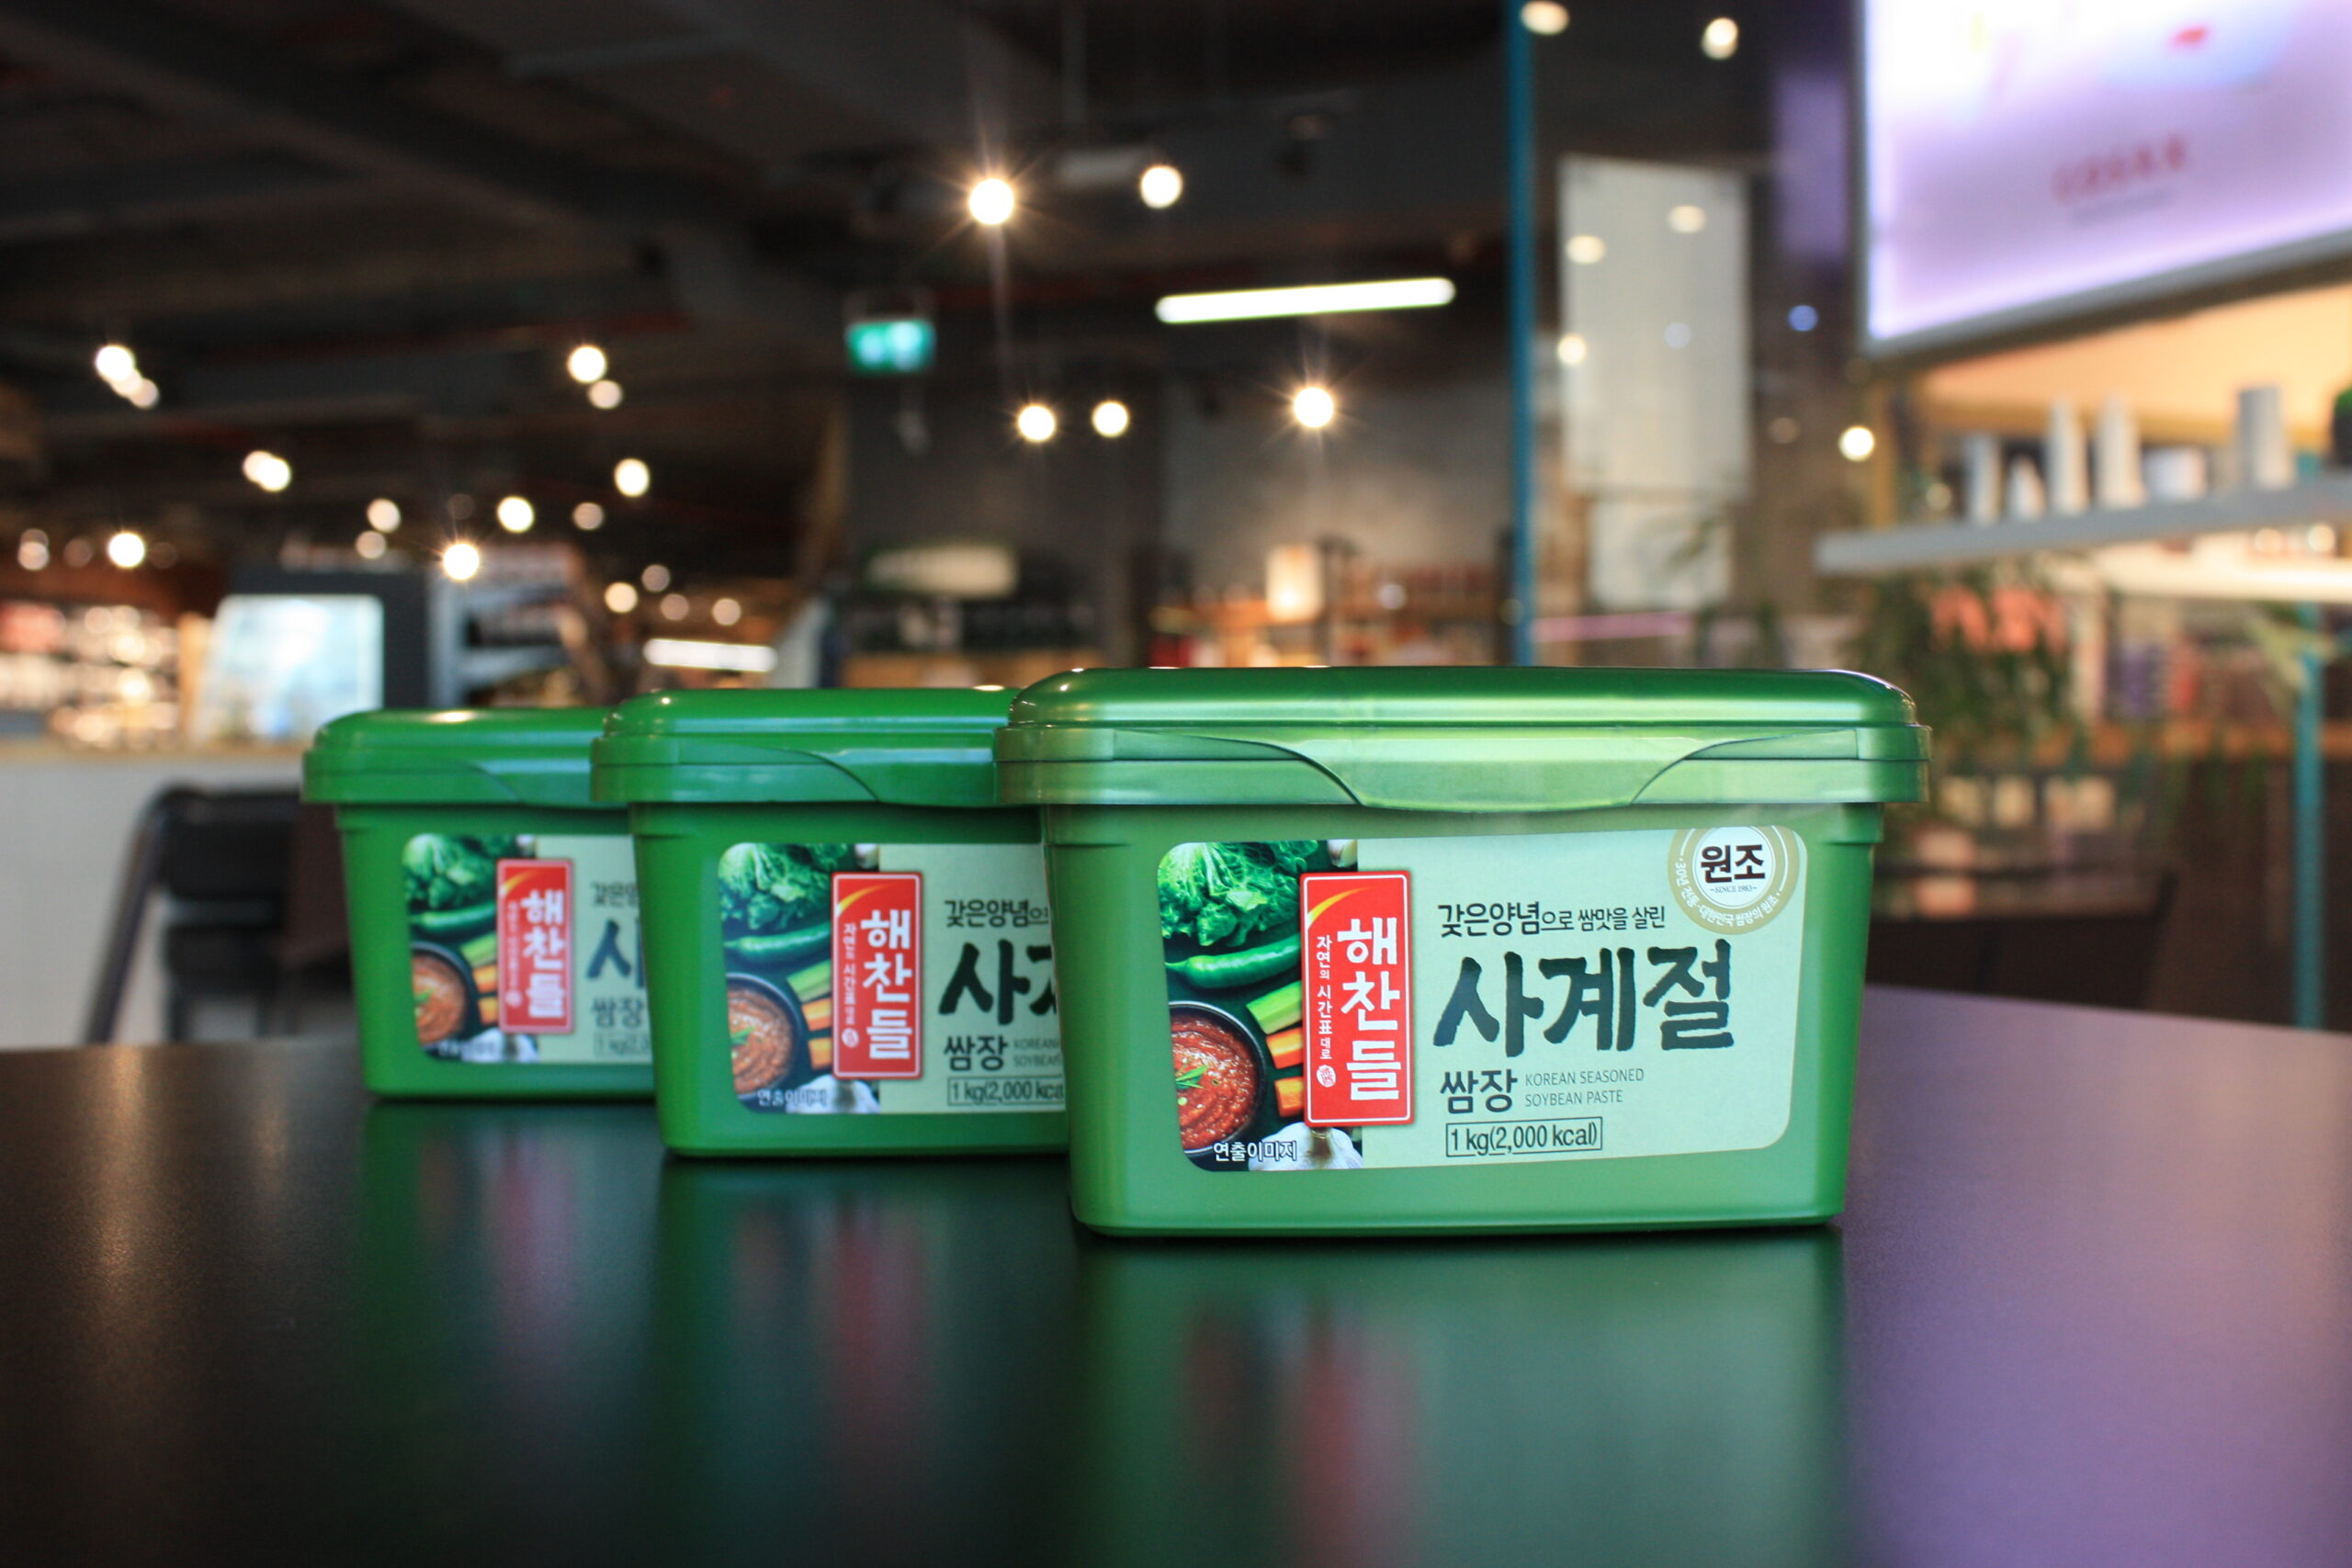 Packs of Ssamjang Korean bbq sauce